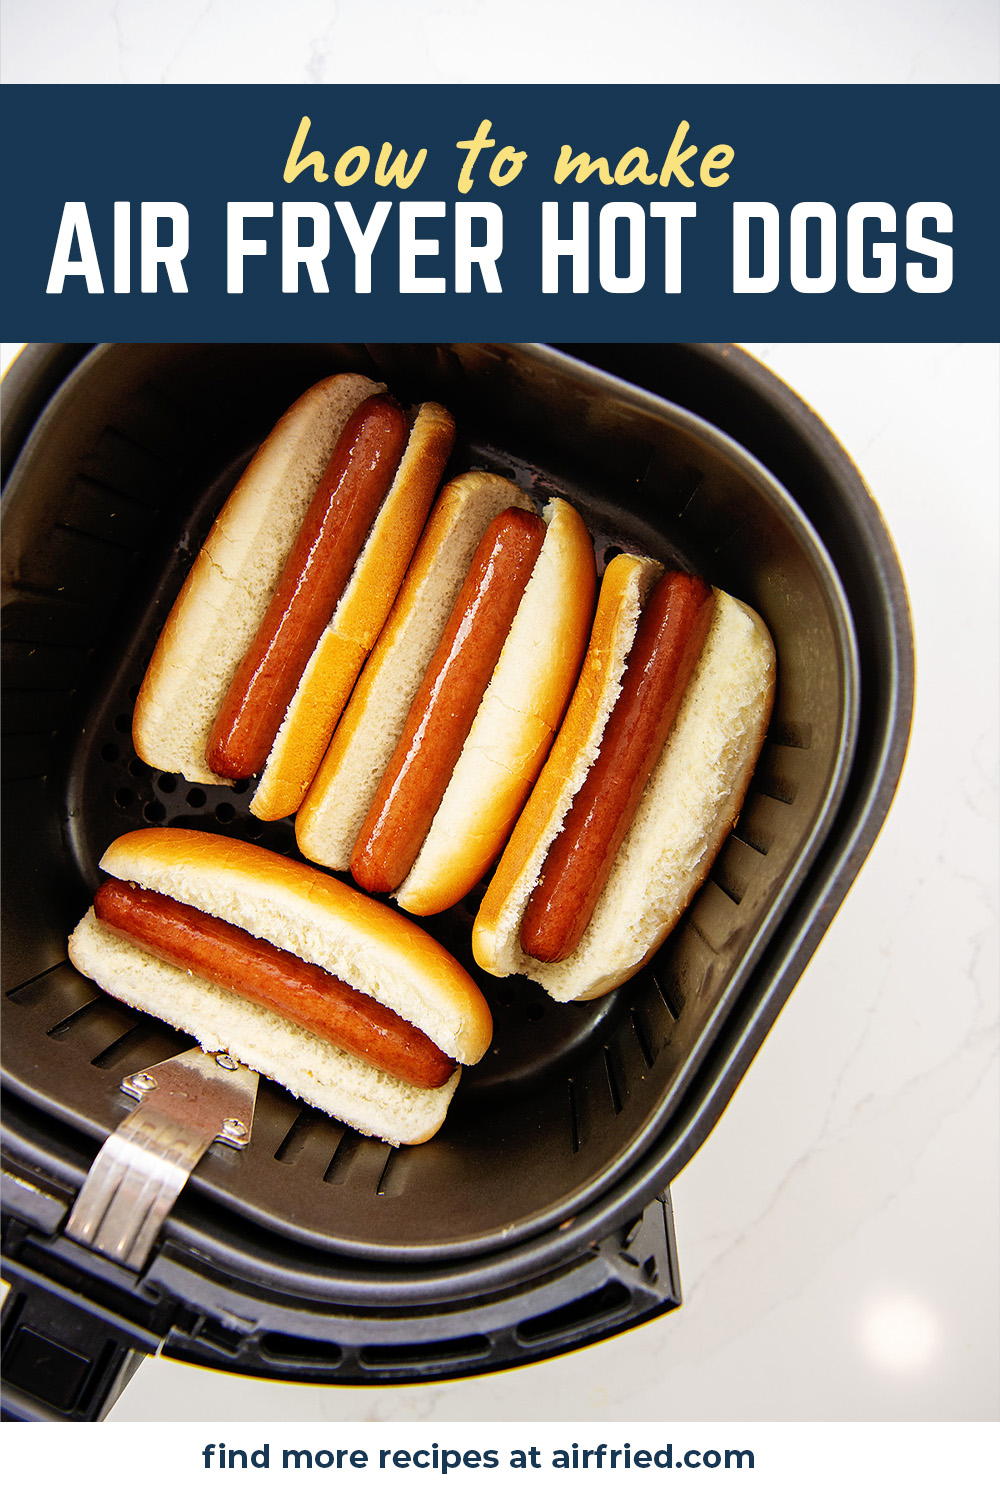 Try hot dogs in an air fryer to make a super easy lunch that is absolutely yummy! #airfried #hotdogsrecipes #easylunch